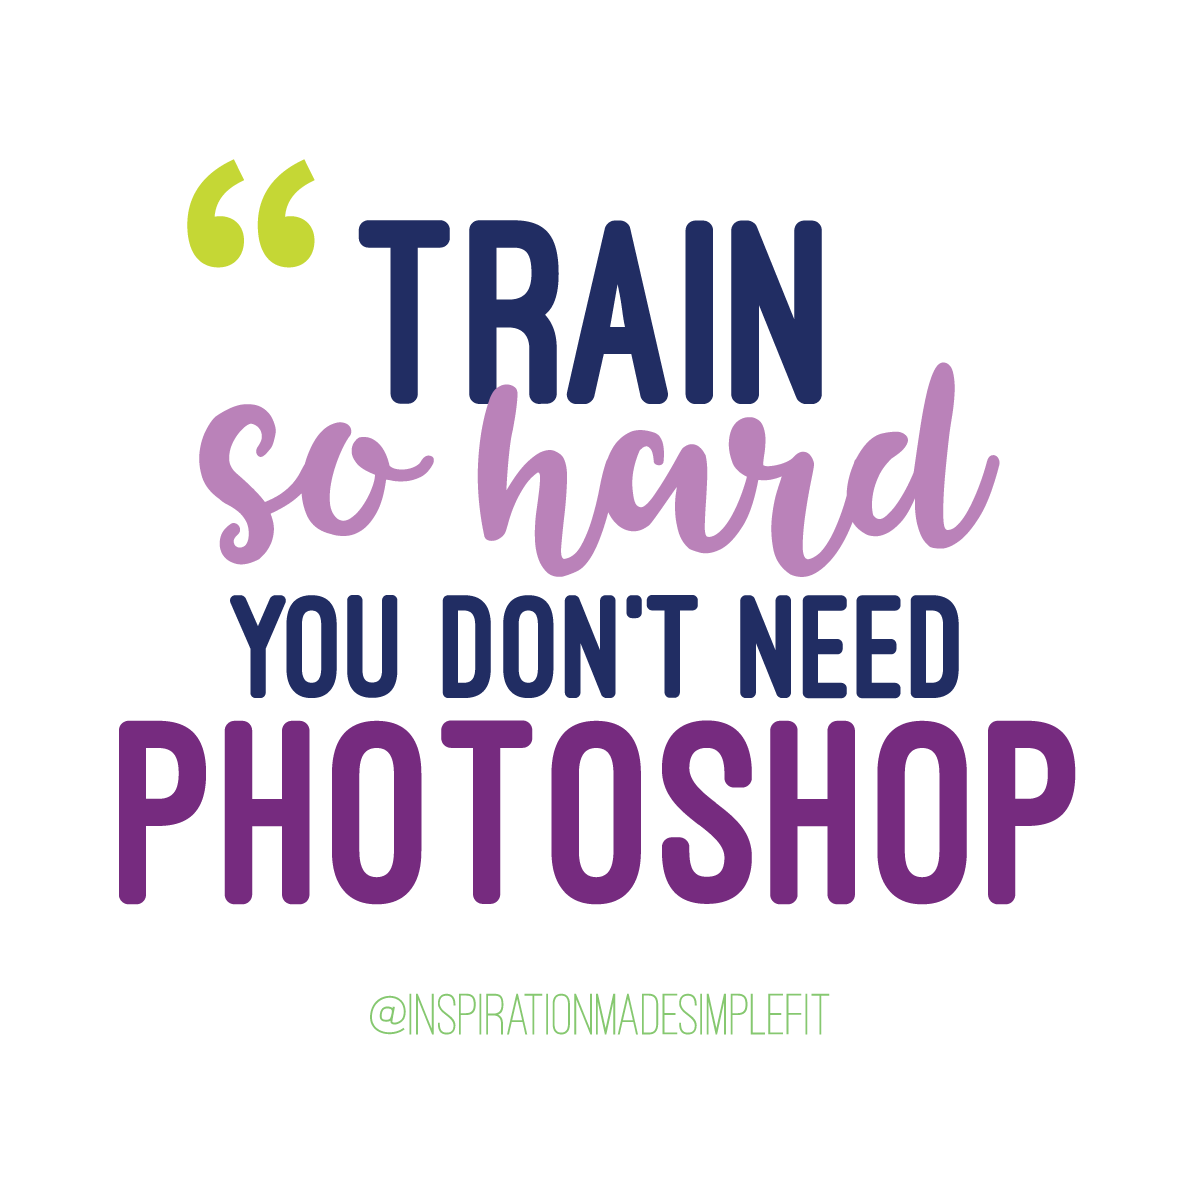 Train so hard you don't need photoshop!